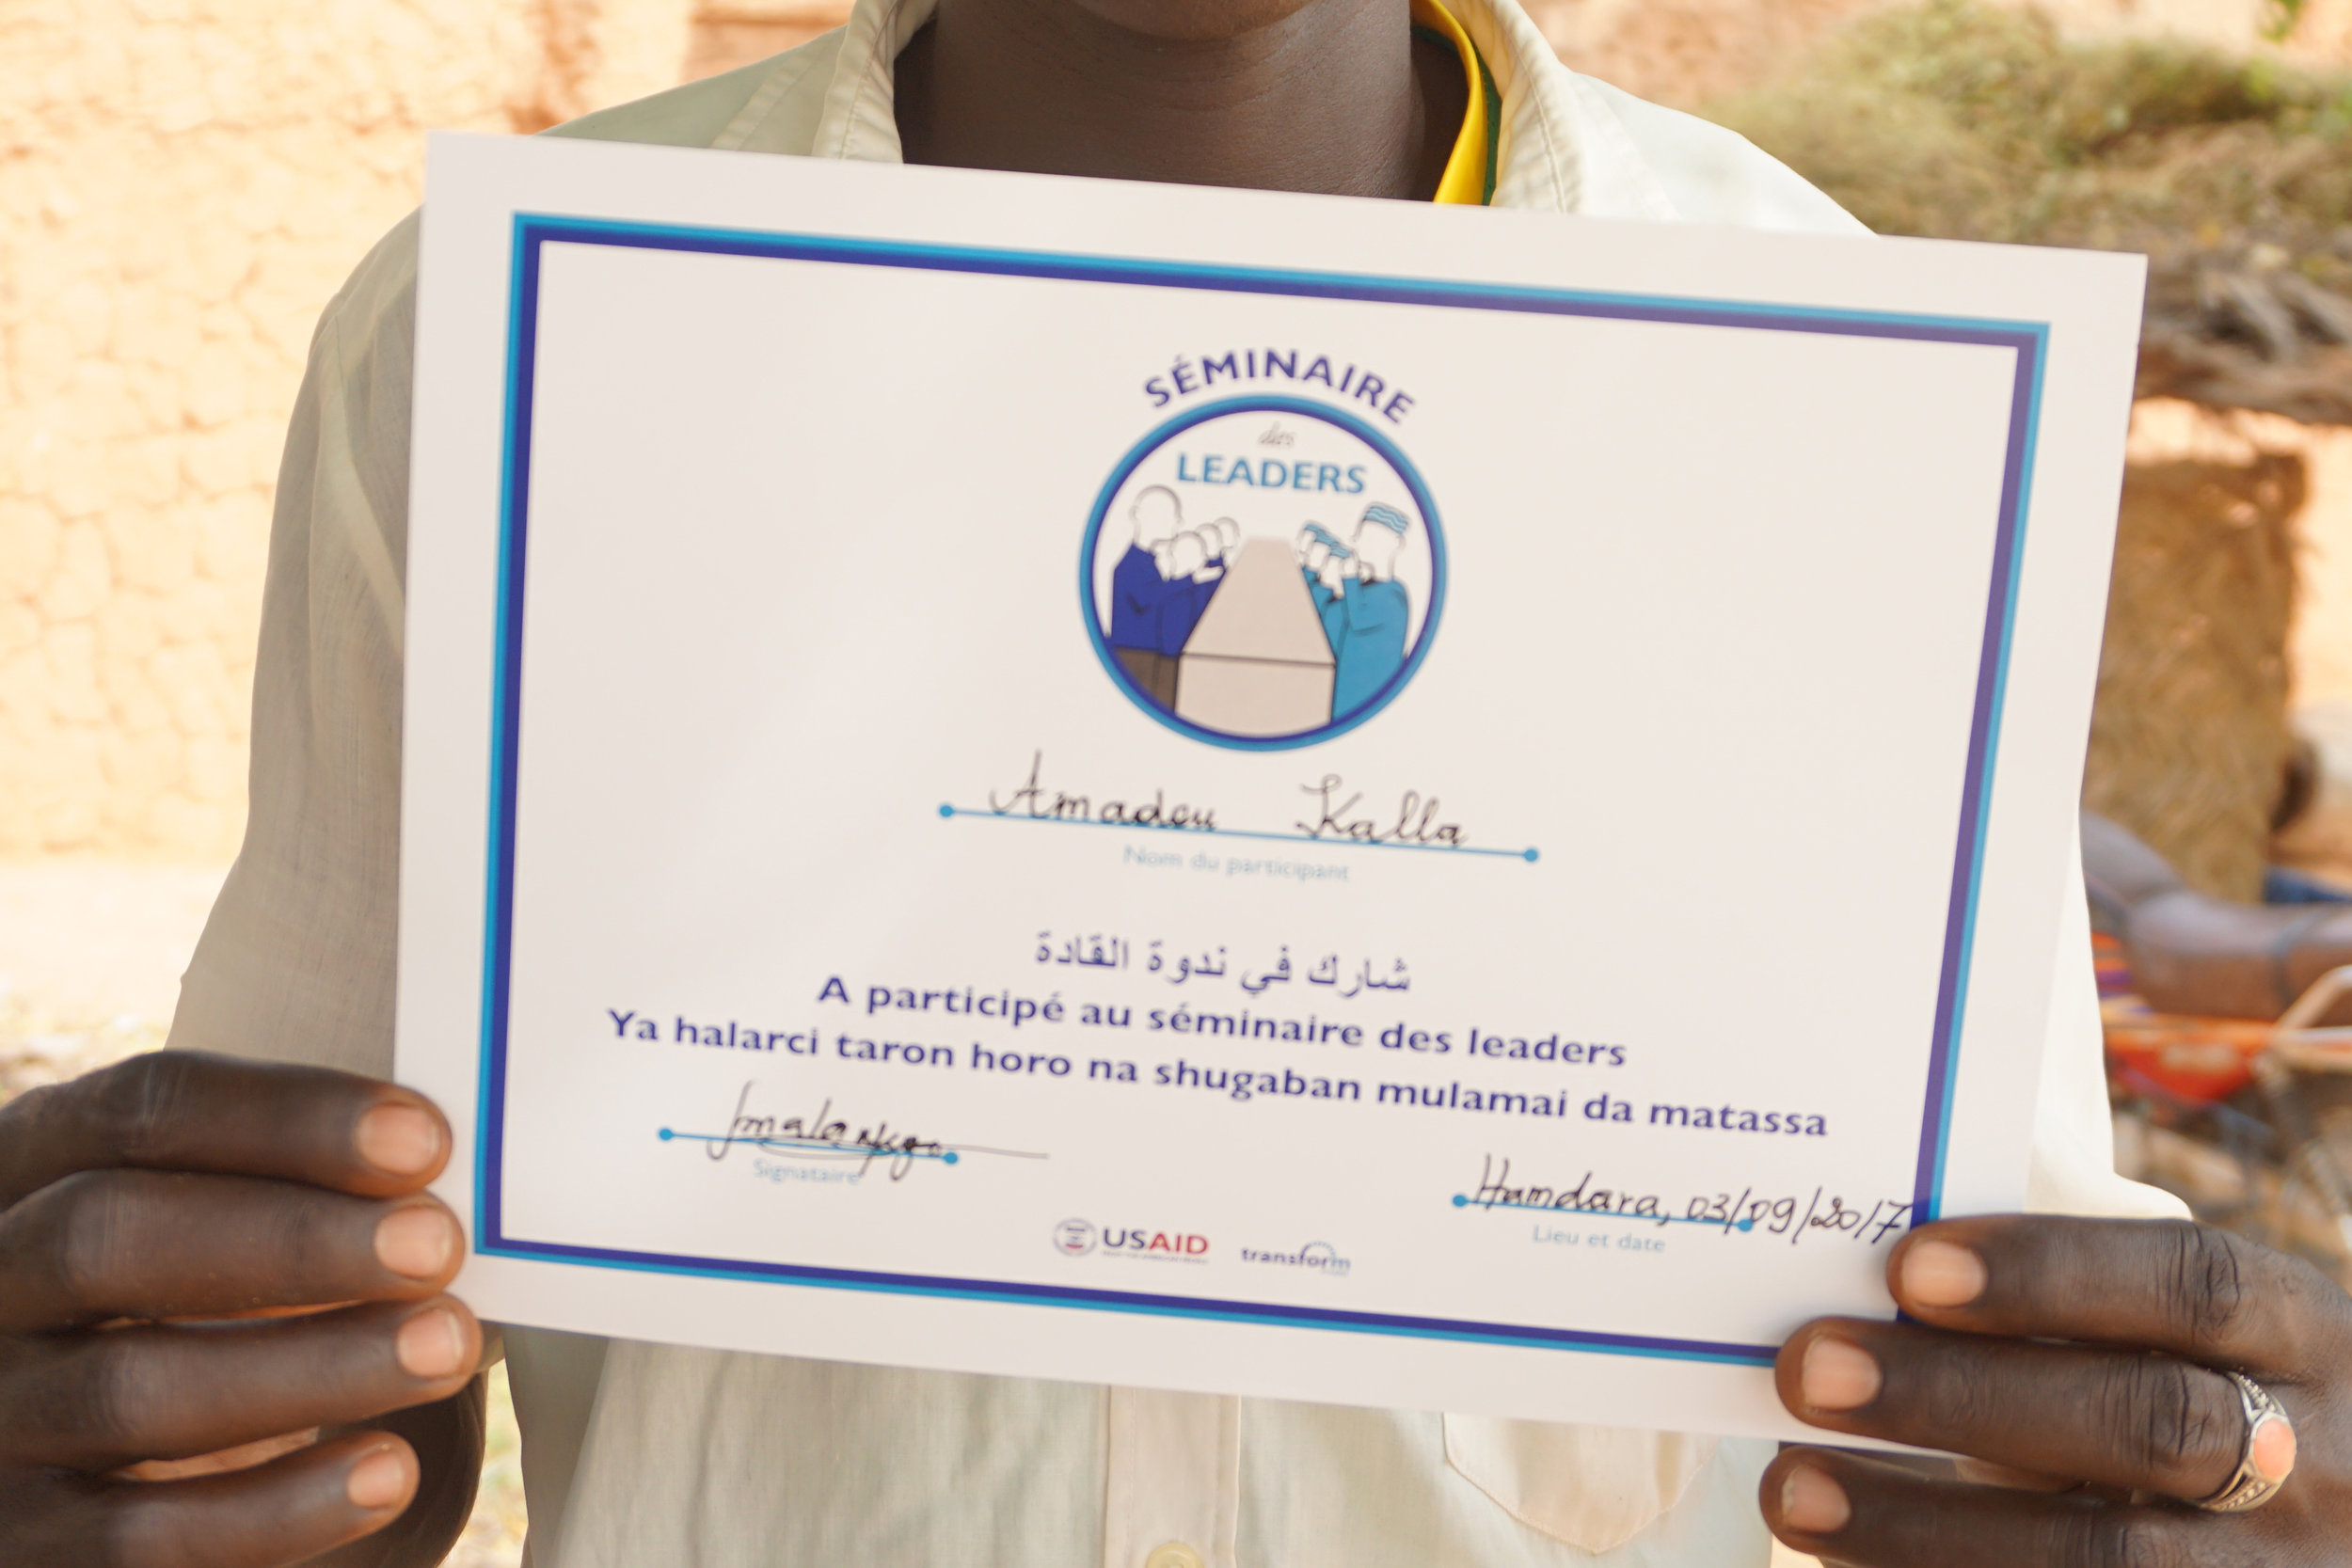 Participating youth and religious leaders received a certificate recognizing and incentivizing their participation in the debates